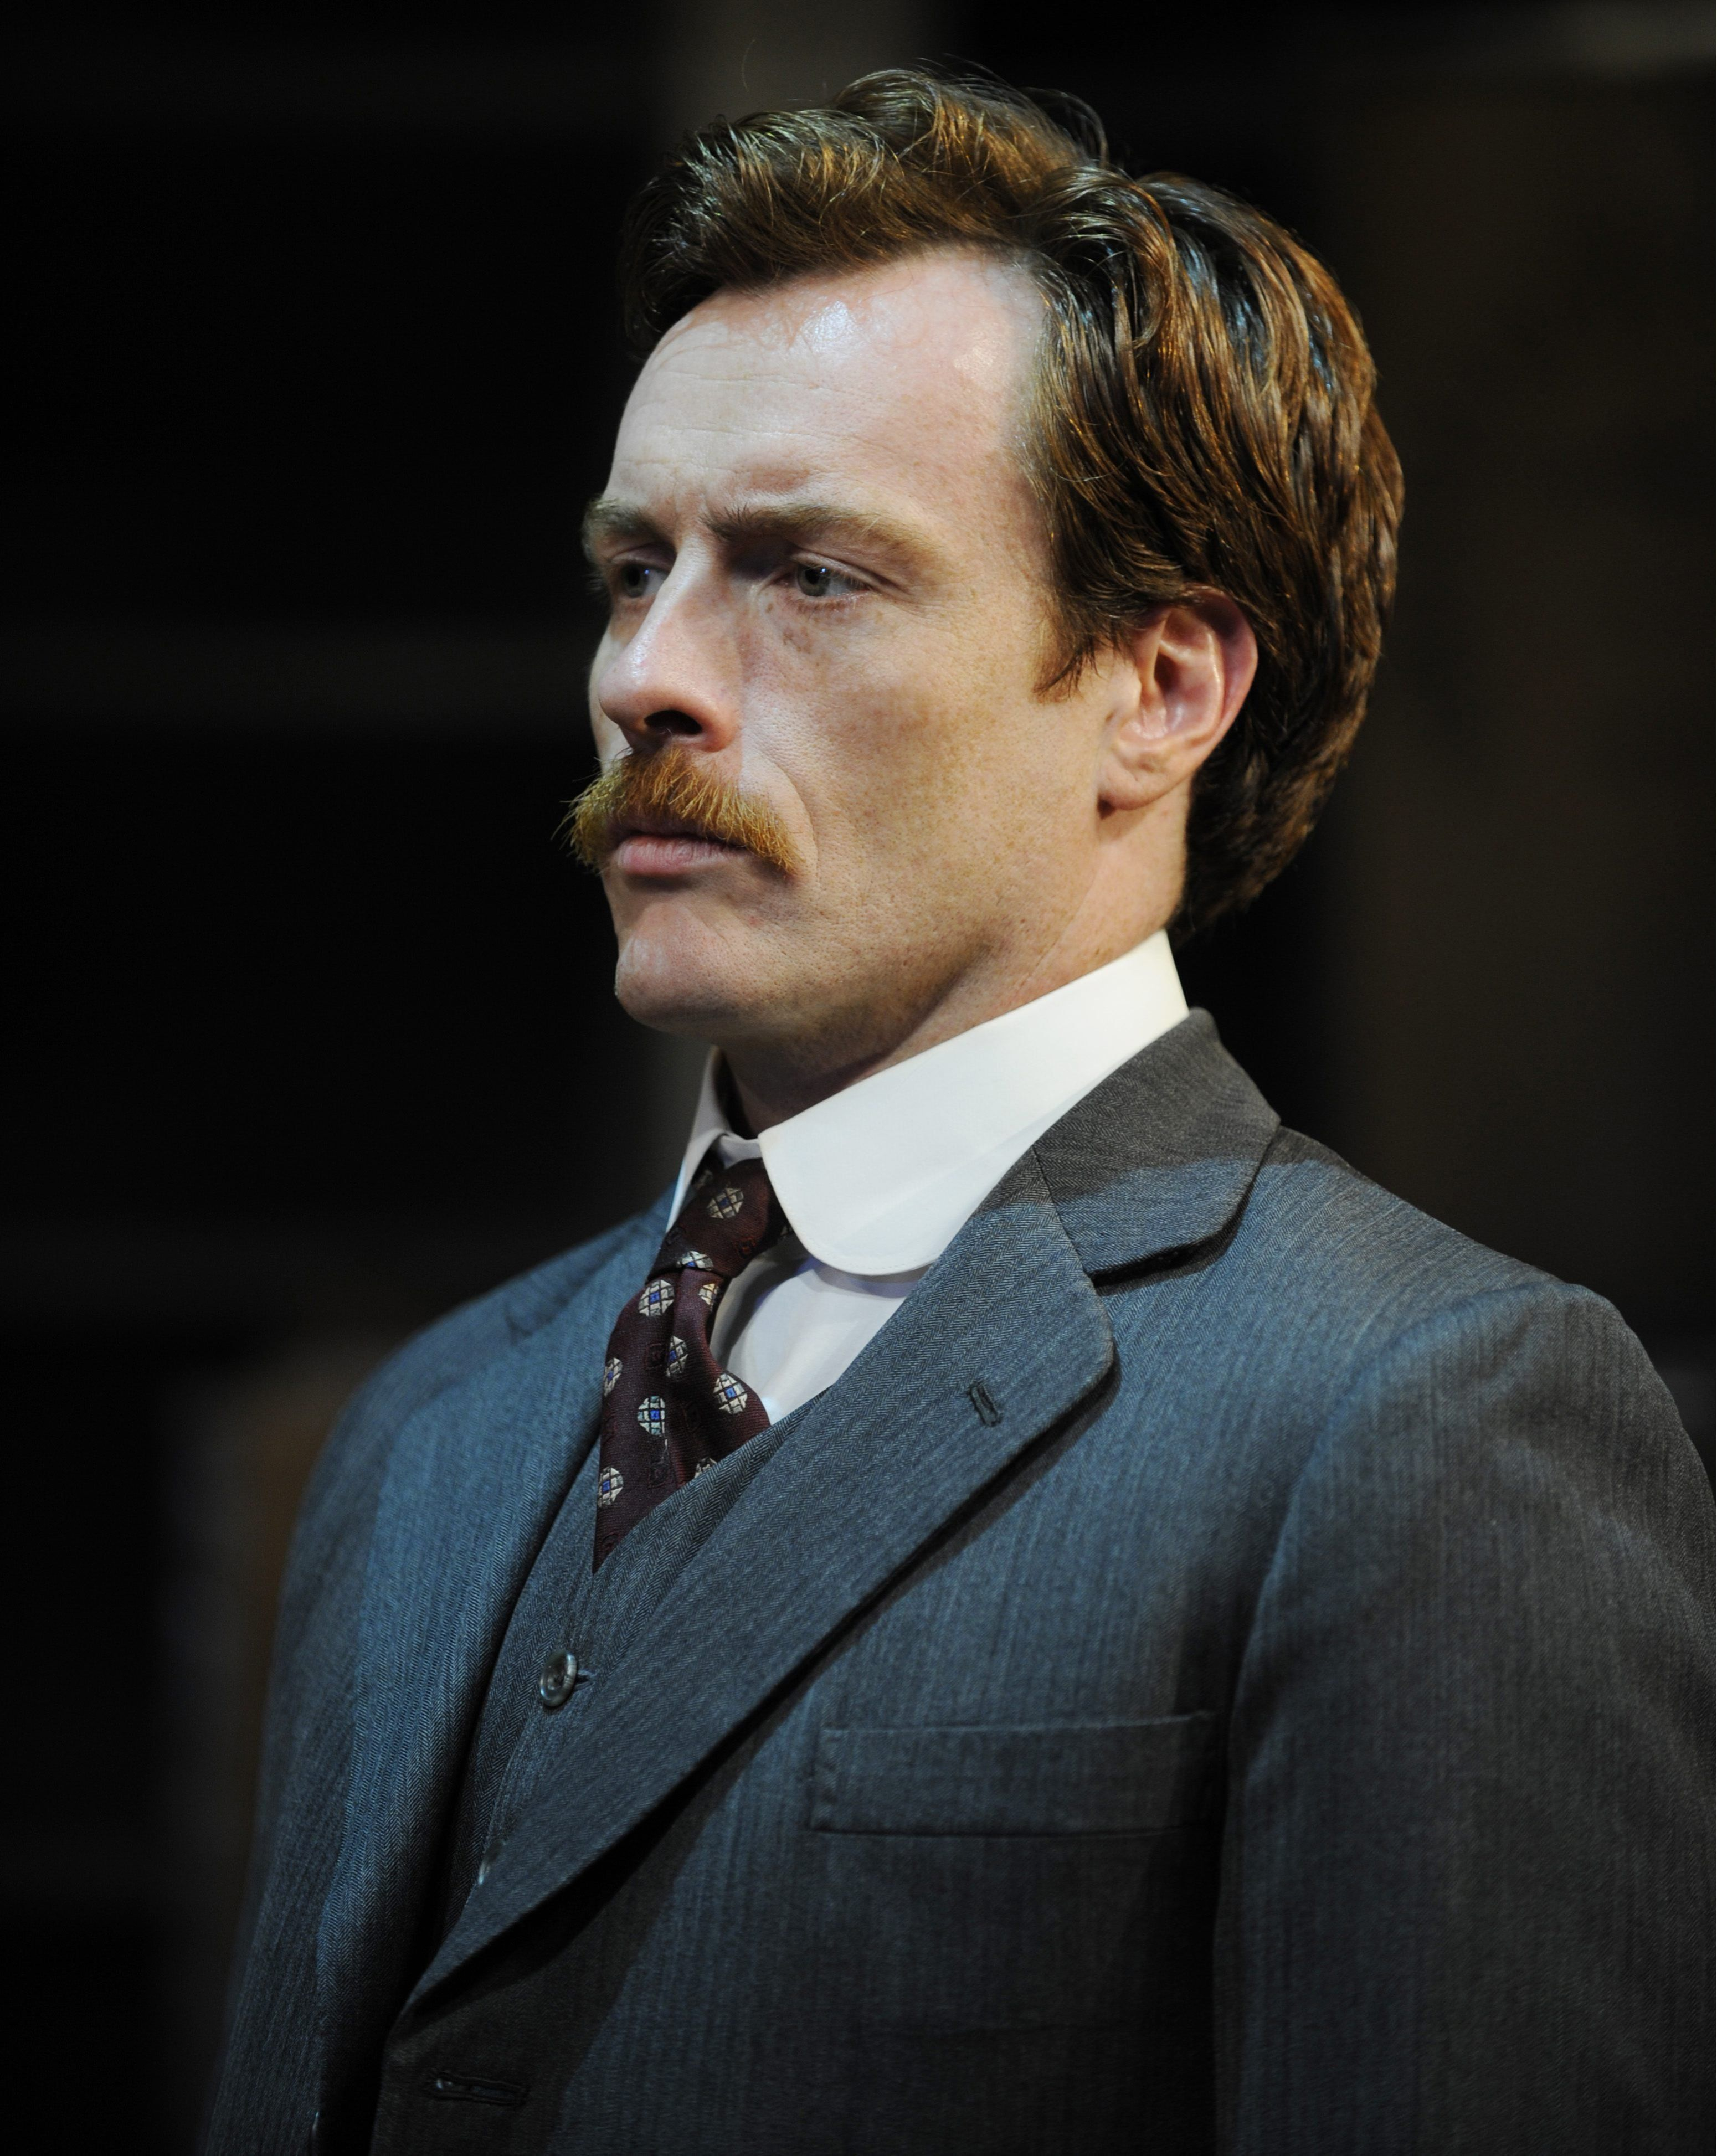 toby stephens it's hottoby stephens height, toby stephens gif, toby stephens twitter, toby stephens кинопоиск, toby stephens rochester, toby stephens photoshoot, toby stephens brother, toby stephens men's health, toby stephens wiki, toby stephens 2017, toby stephens michael fassbender, toby stephens - twelfth night, toby stephens rupert penry-jones, toby stephens bond, toby stephens it's hot, toby stephens robin hood, toby stephens actor, toby stephens tattoo, toby stephens theatre, toby stephens height weight